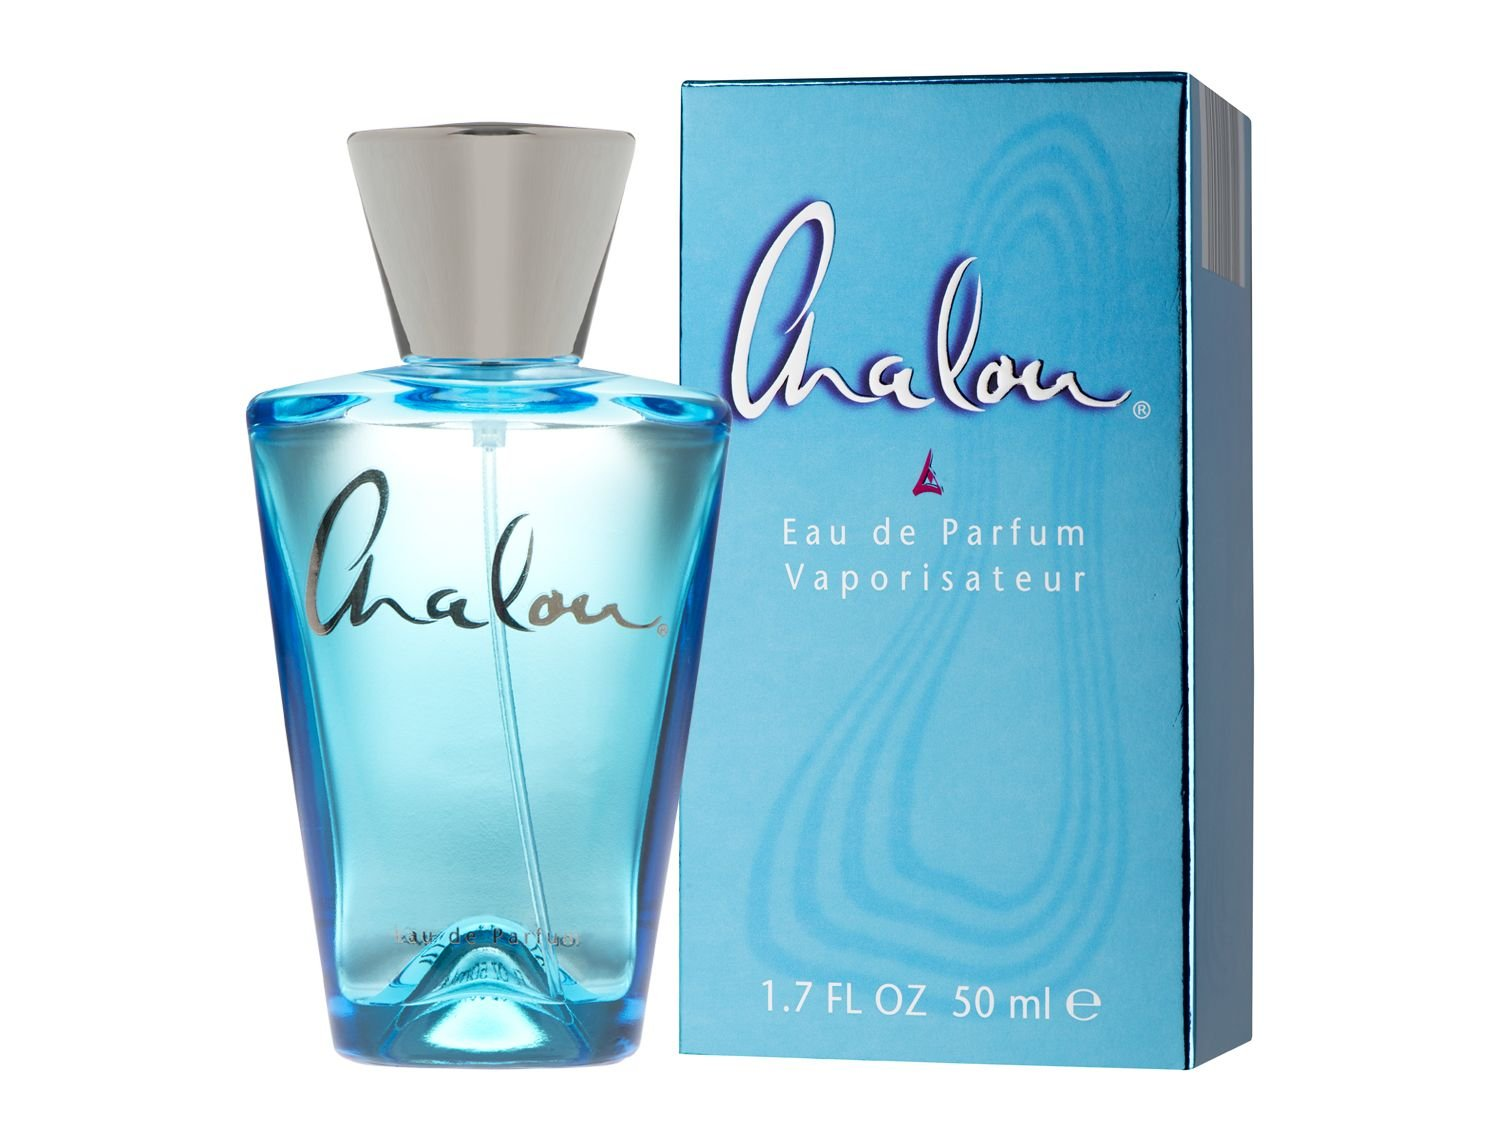 Chalou Women's Eau de Parfum Spray 50 ml – Blue